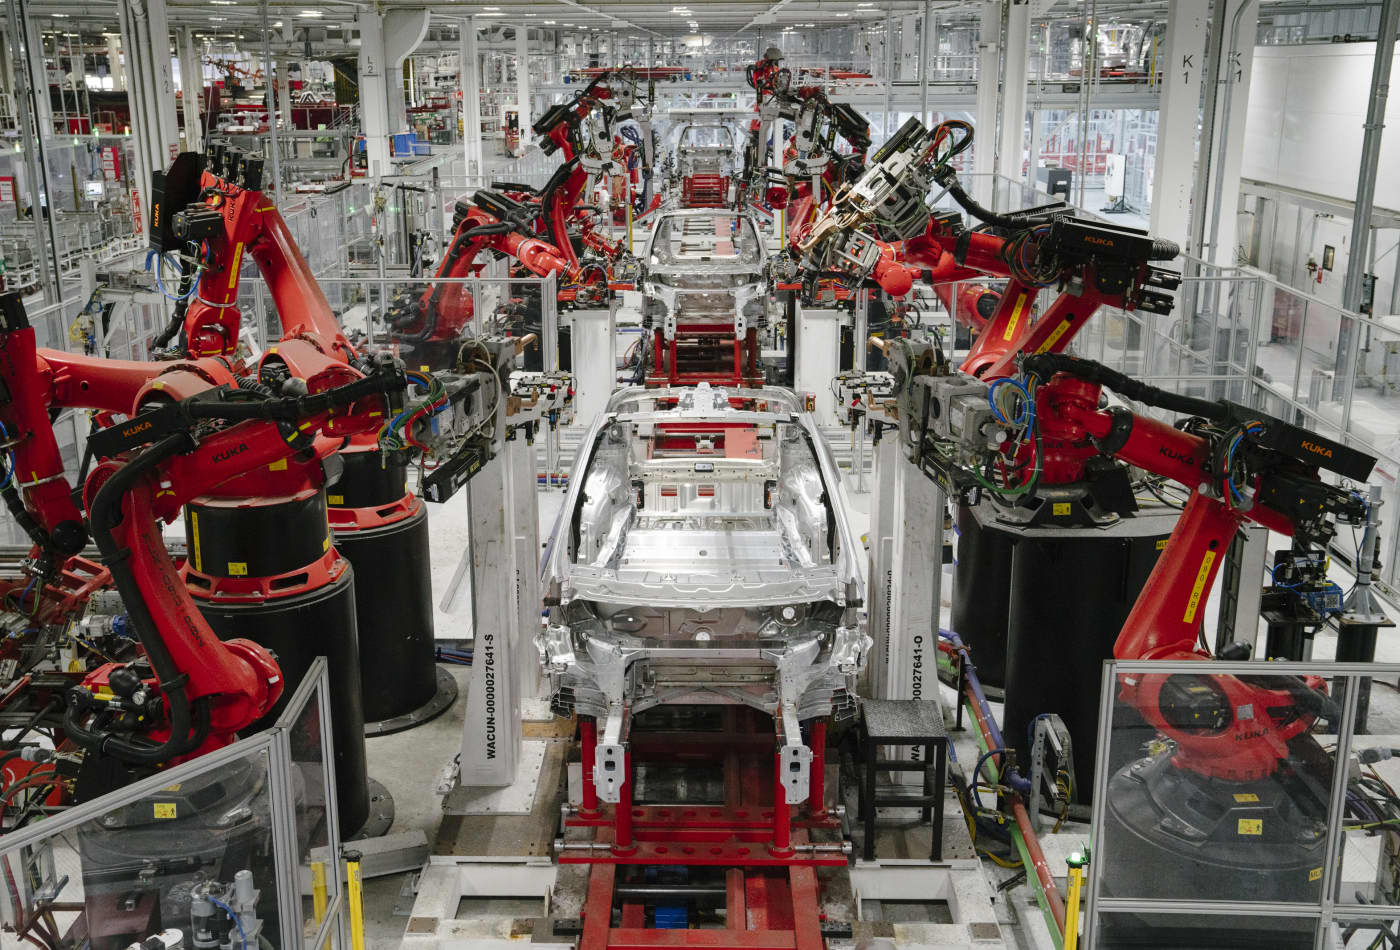 Tesla tells employees Model S and X production will shut down for 18 days